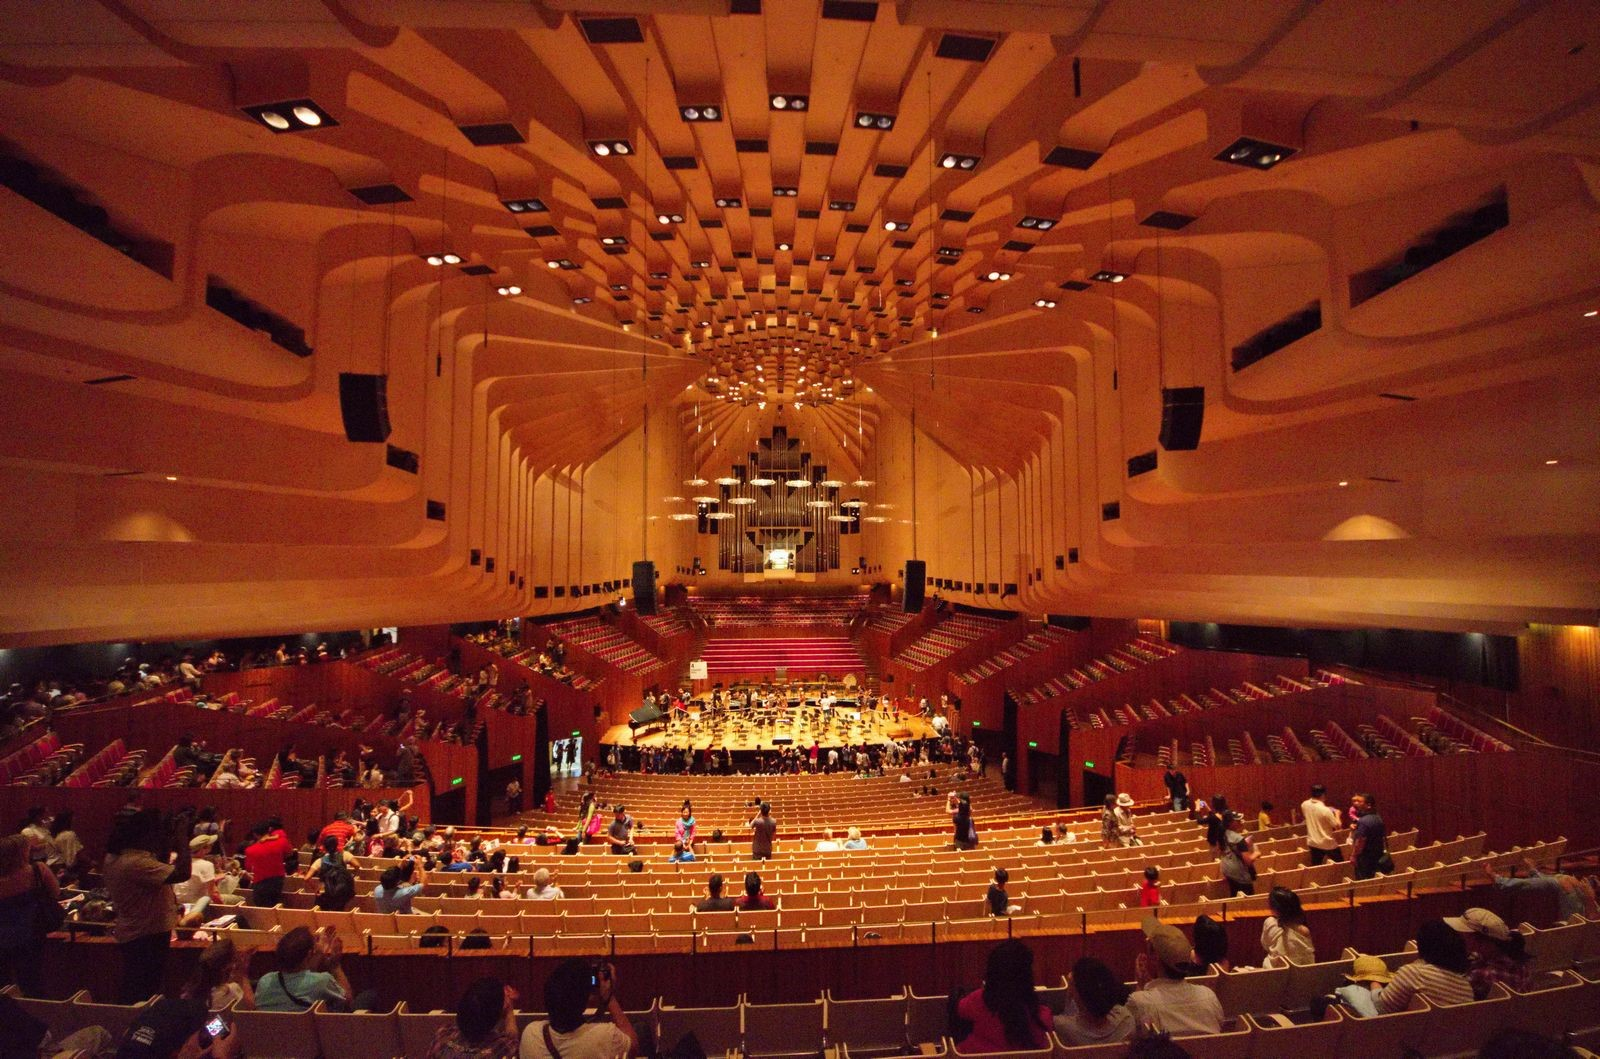 12 - 23+ Photos Inside Sydney Opera House  Pictures